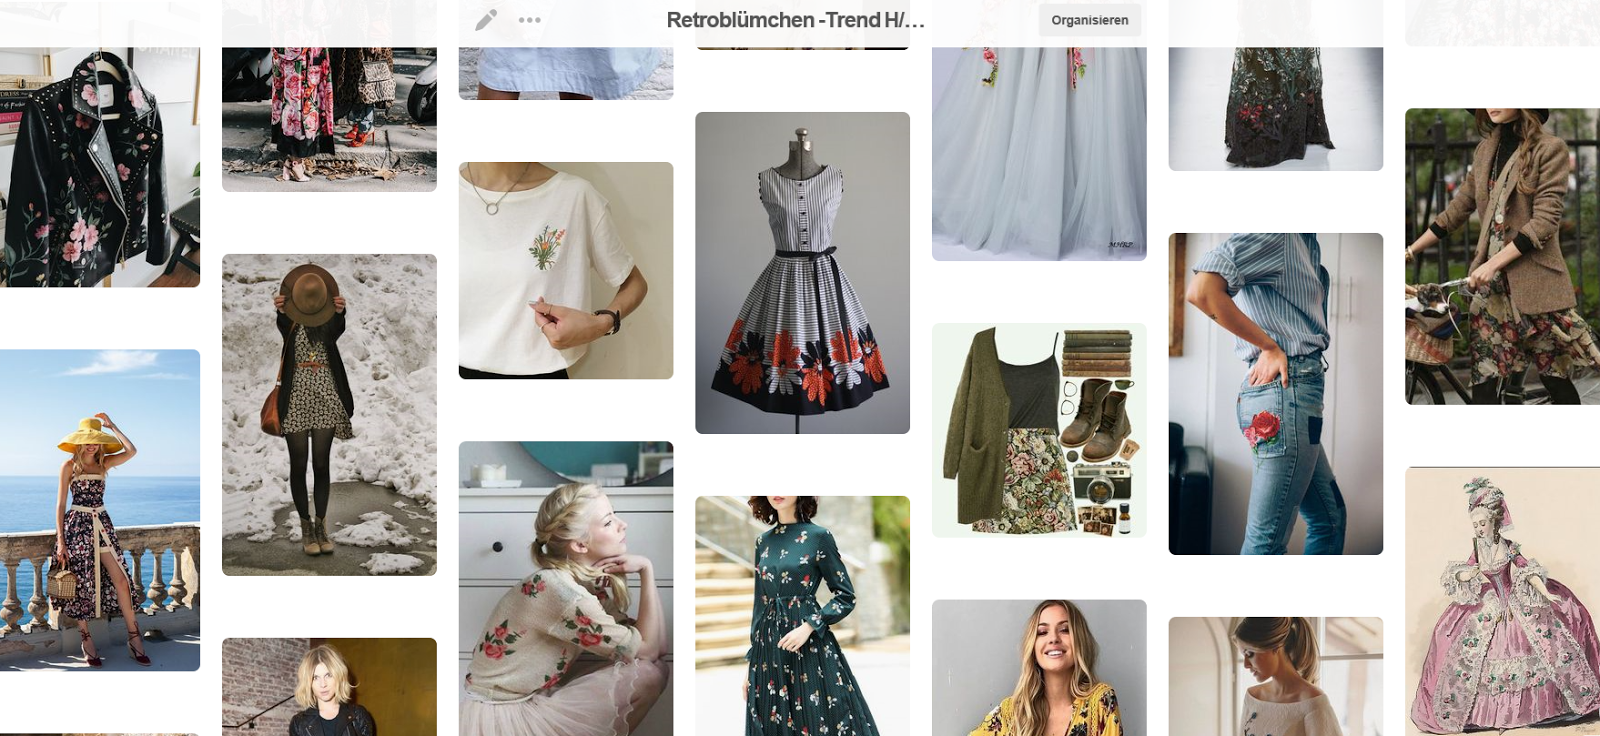 https://www.pinterest.de/yourlookinlife/retrobl%C3%BCmchen-trend-hw-2017/